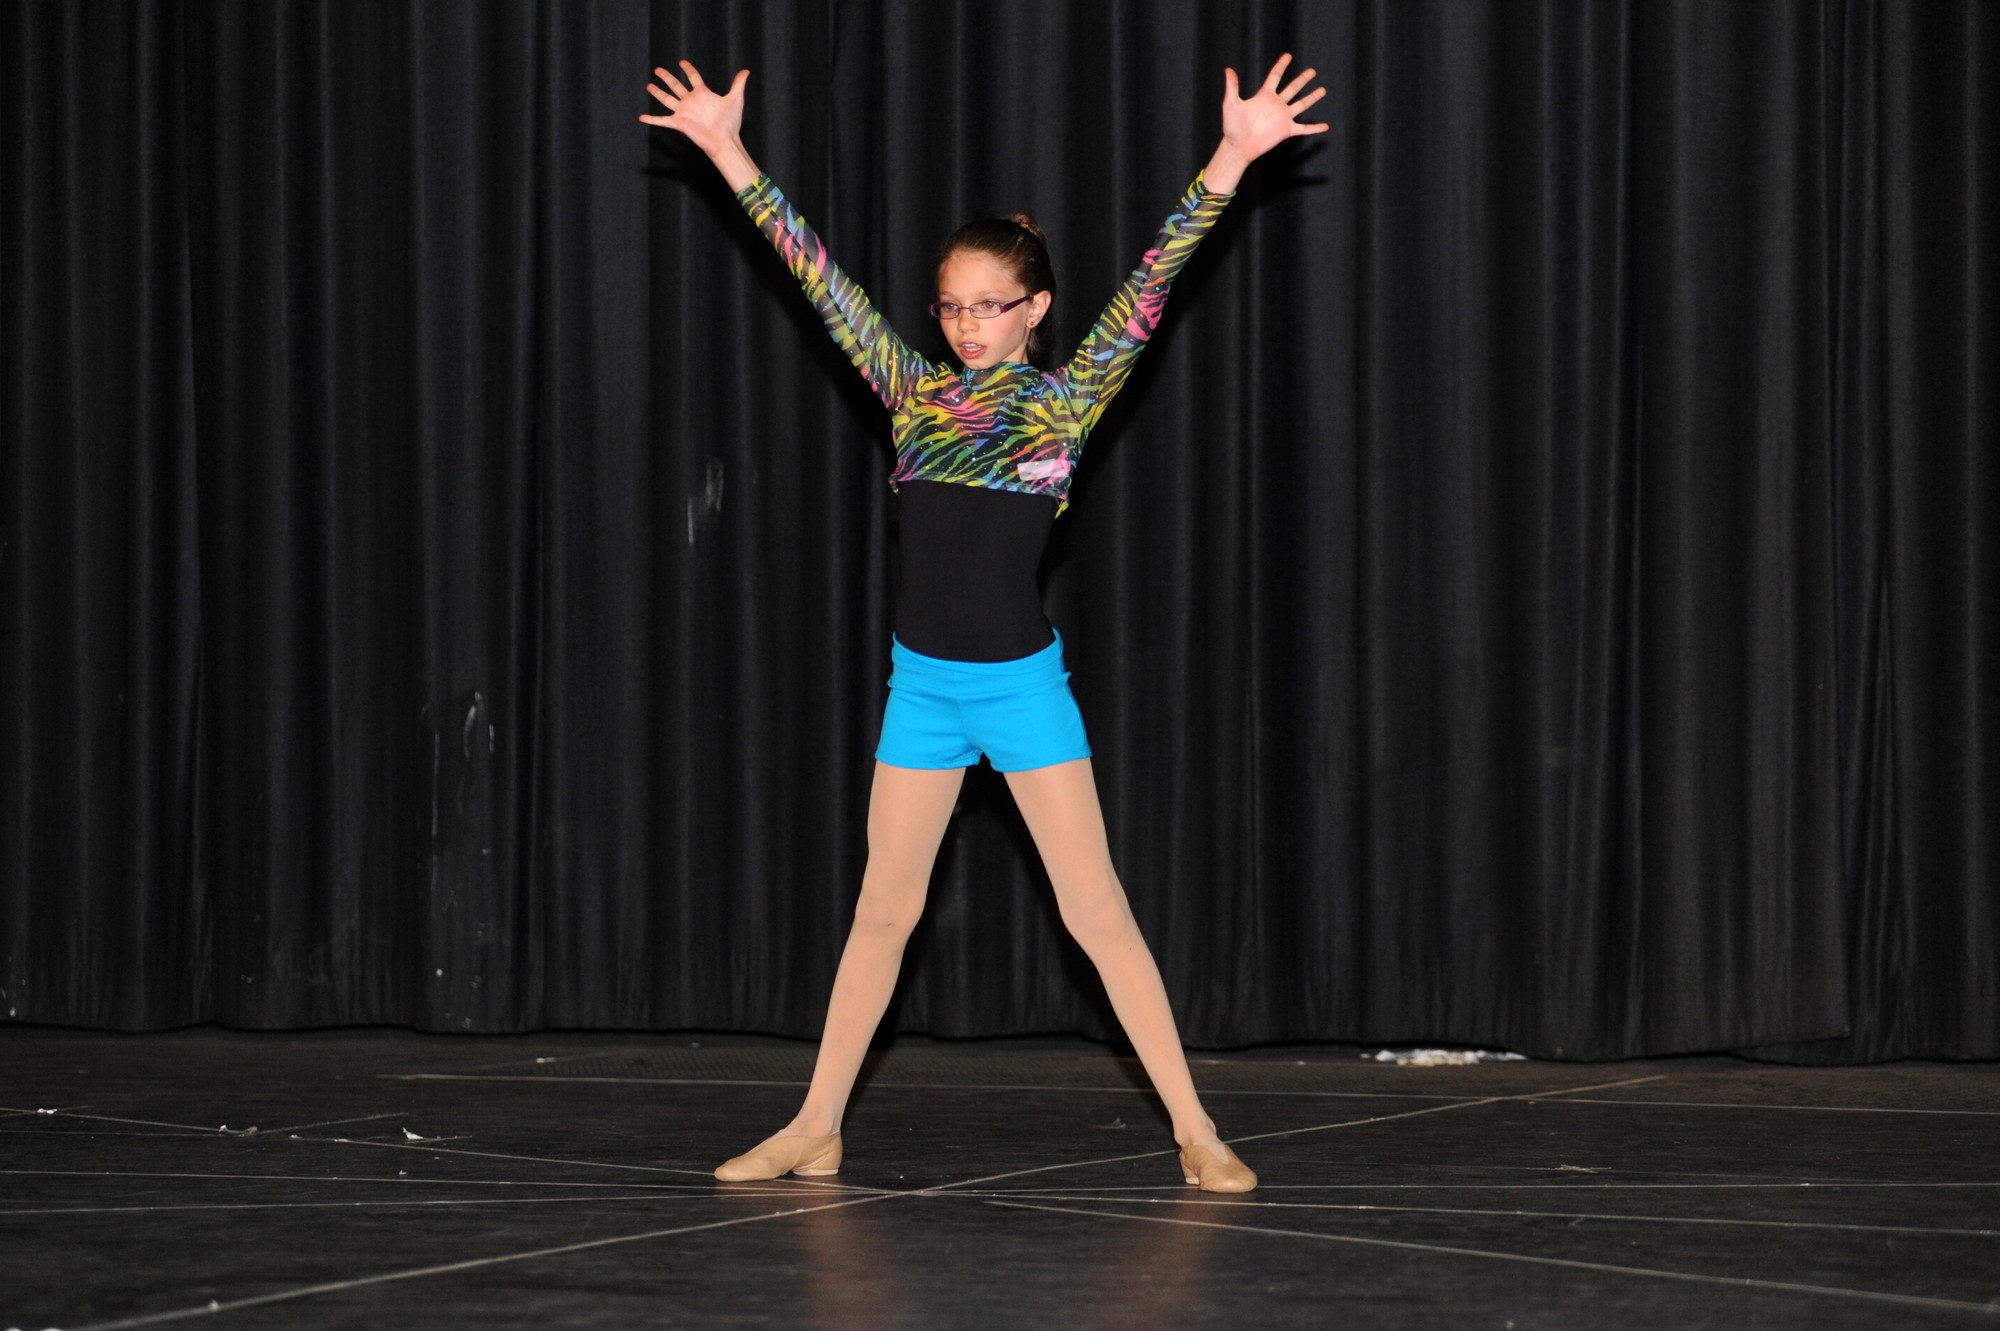 Lilli-Ann Greene lent a dance performance to the show.